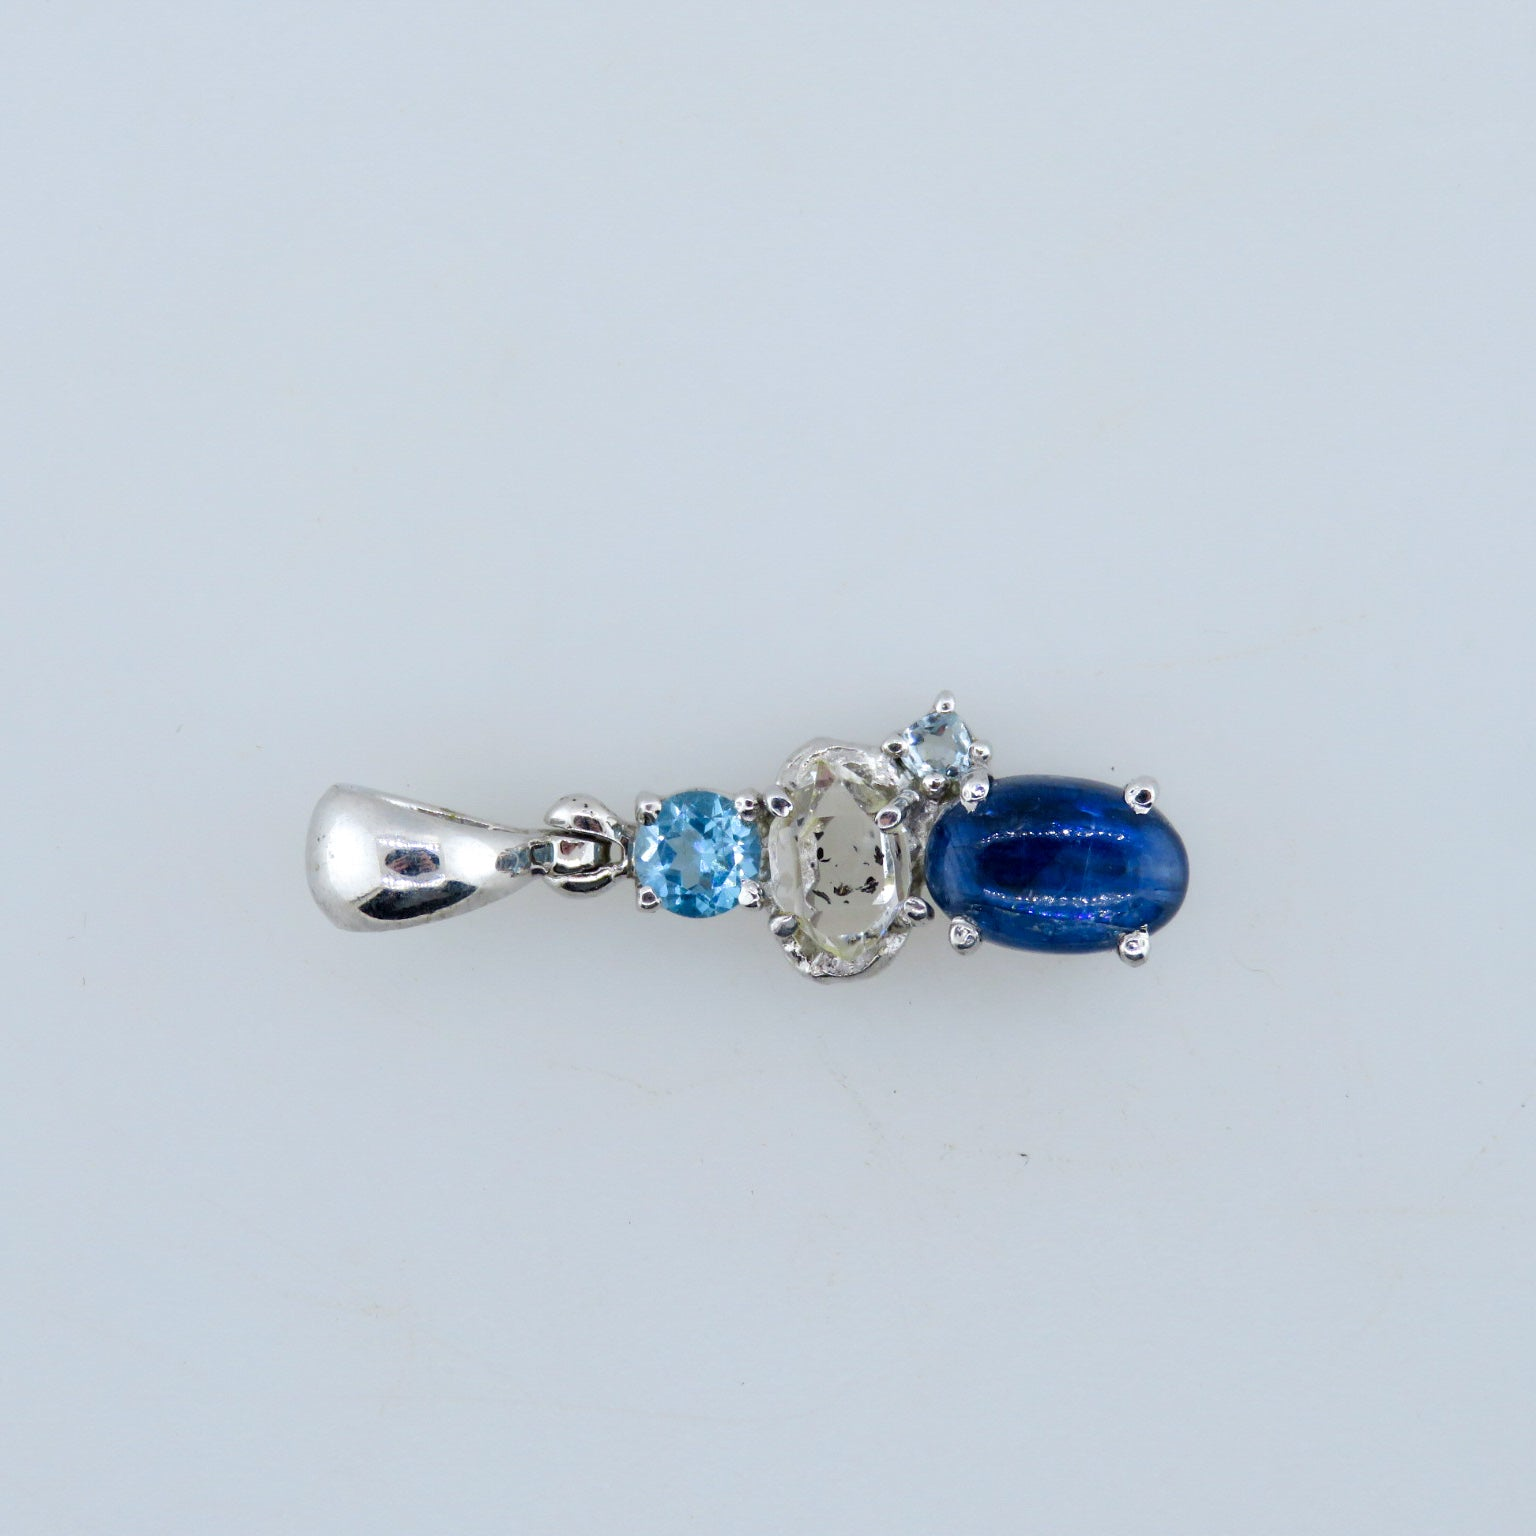 Kyanite Sterling Silver Pendant with Herkimar Diamond Quartz and Blue Topaz